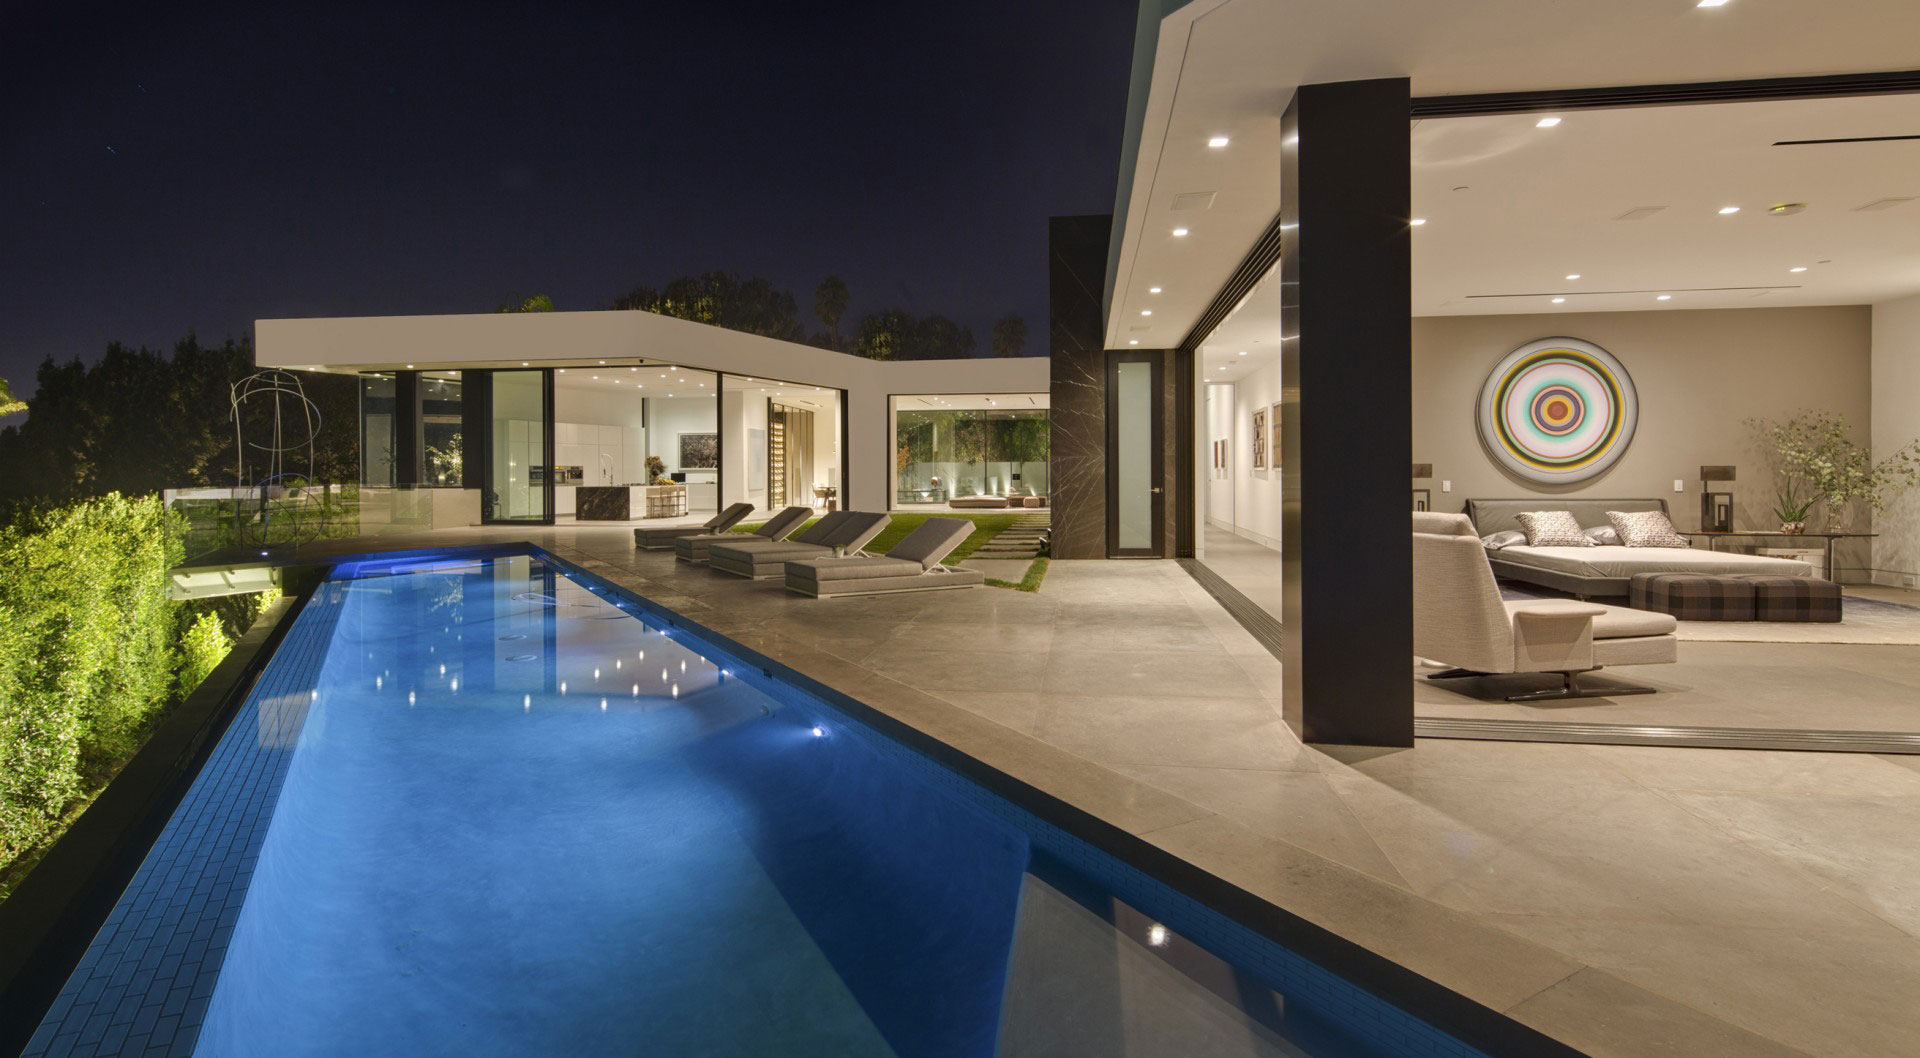 Stone Patio - A dramatic glass home overlooking the l a basin